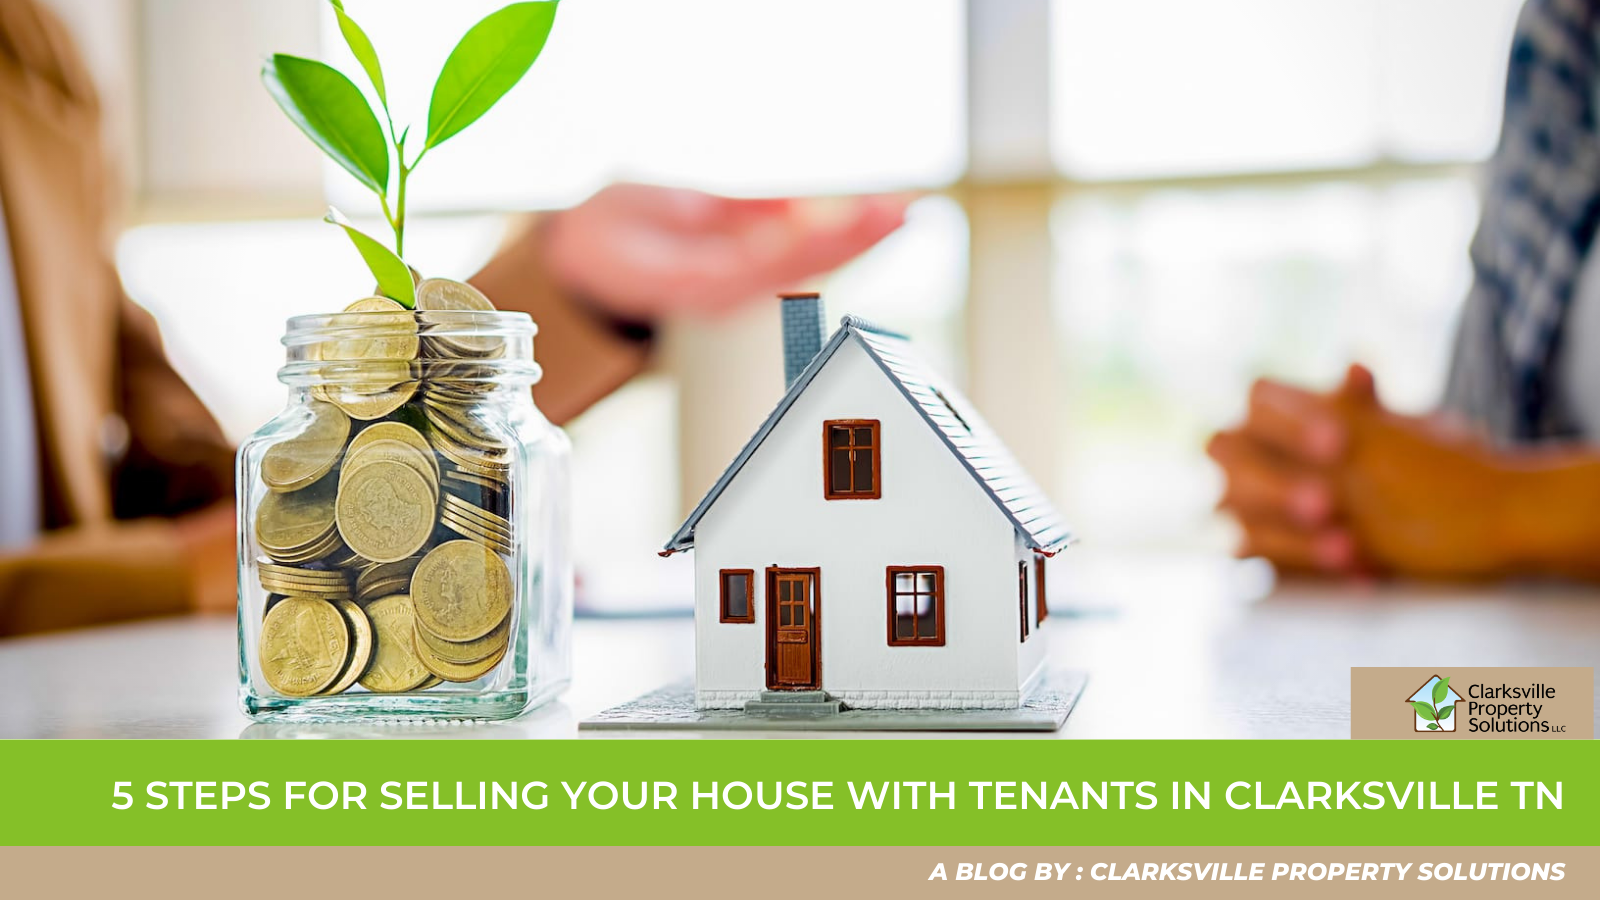 5 Steps For Selling Your House With Tenants in Clarksville TN